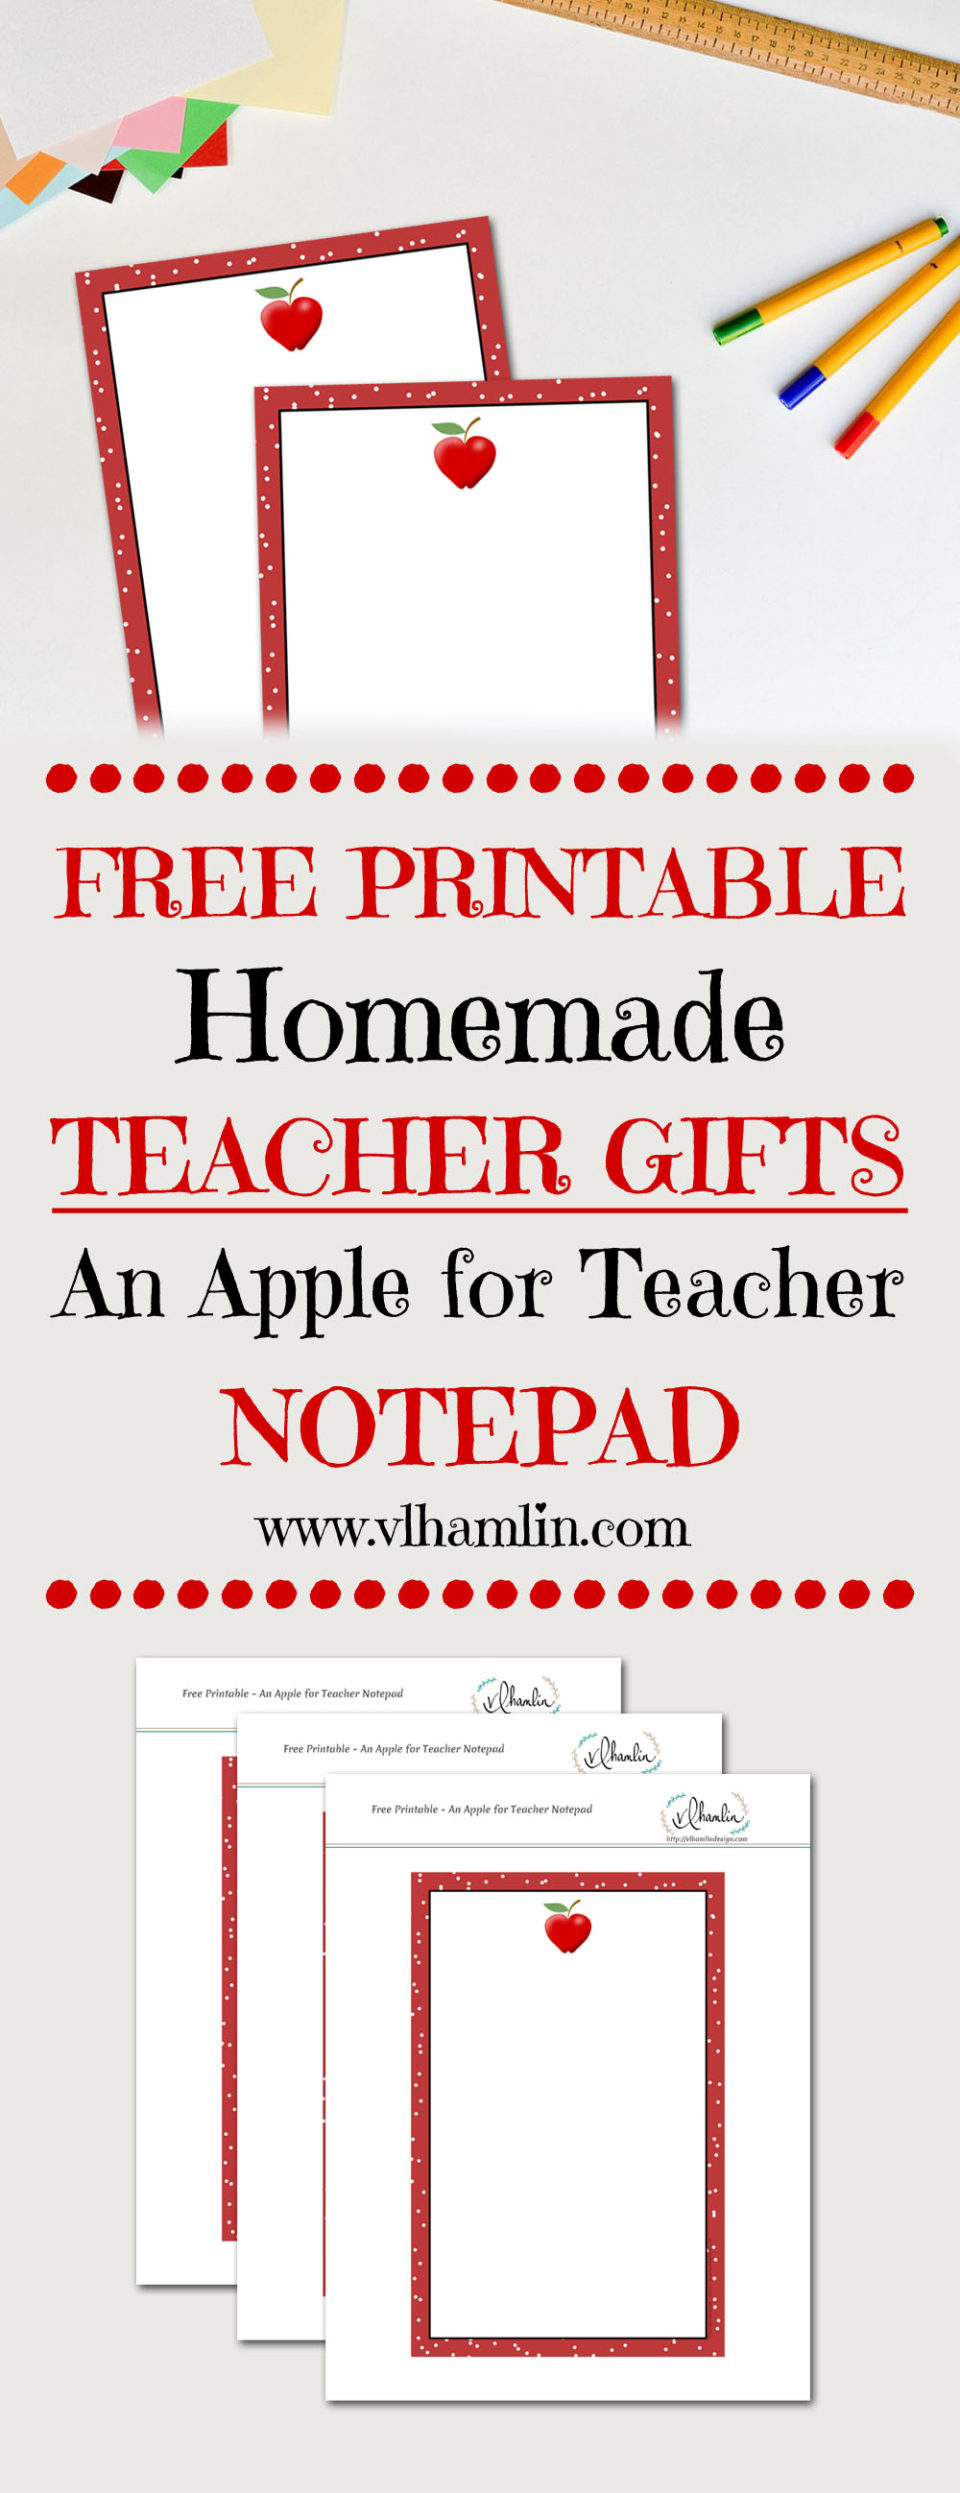 An Apple for Teacher Notepad - LEAD